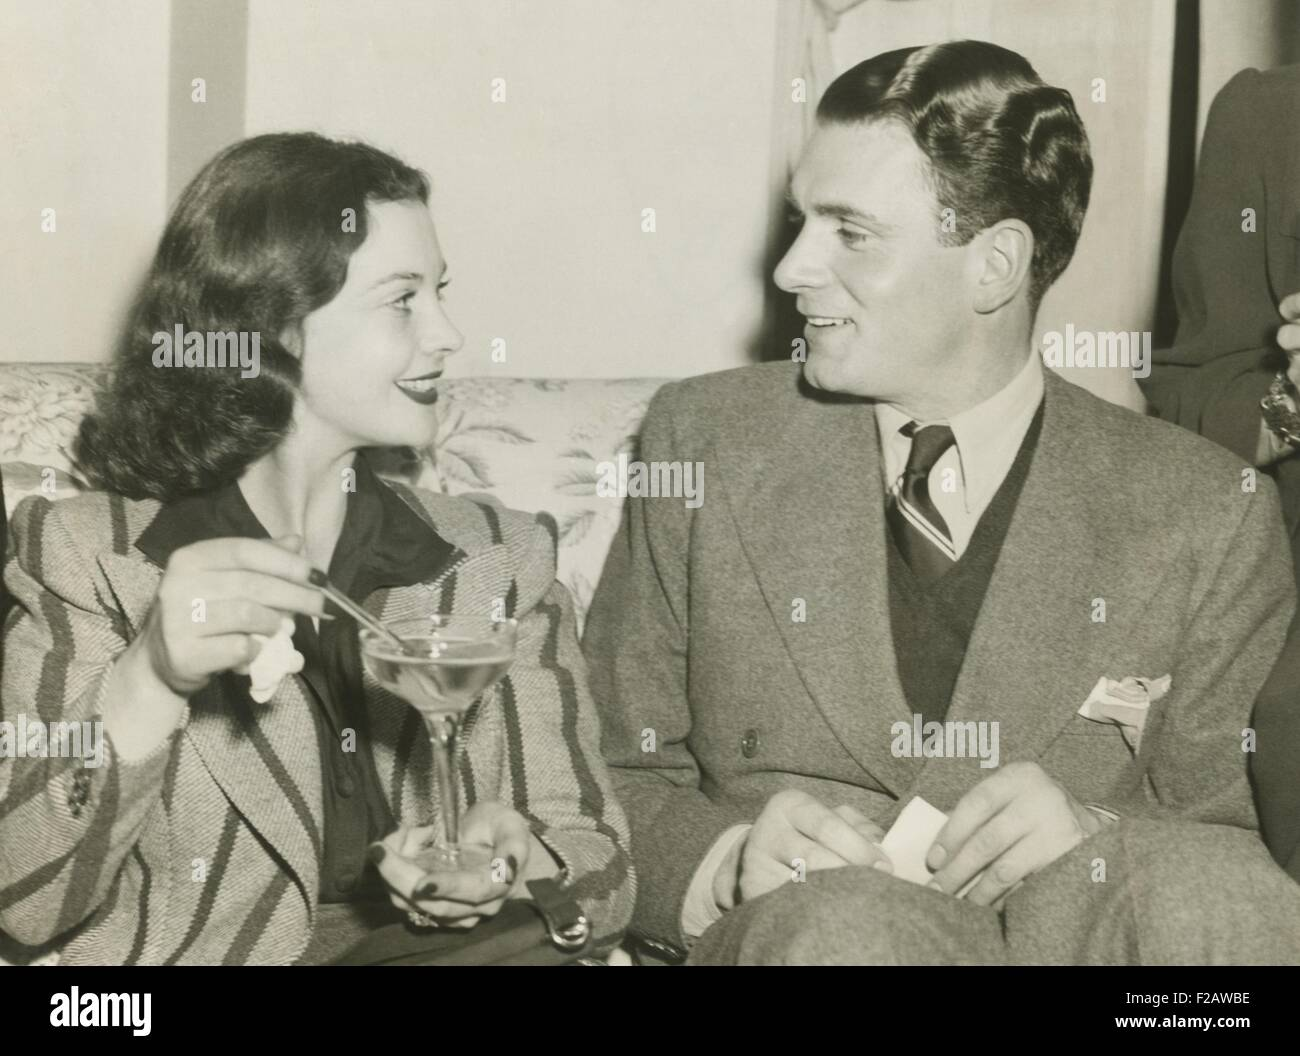 Vivien Leigh and Laurence Olivier in Atlanta, Georgia, Dec. 12, 1939. Vivien Leigh was there for the World Premiere - Stock Image